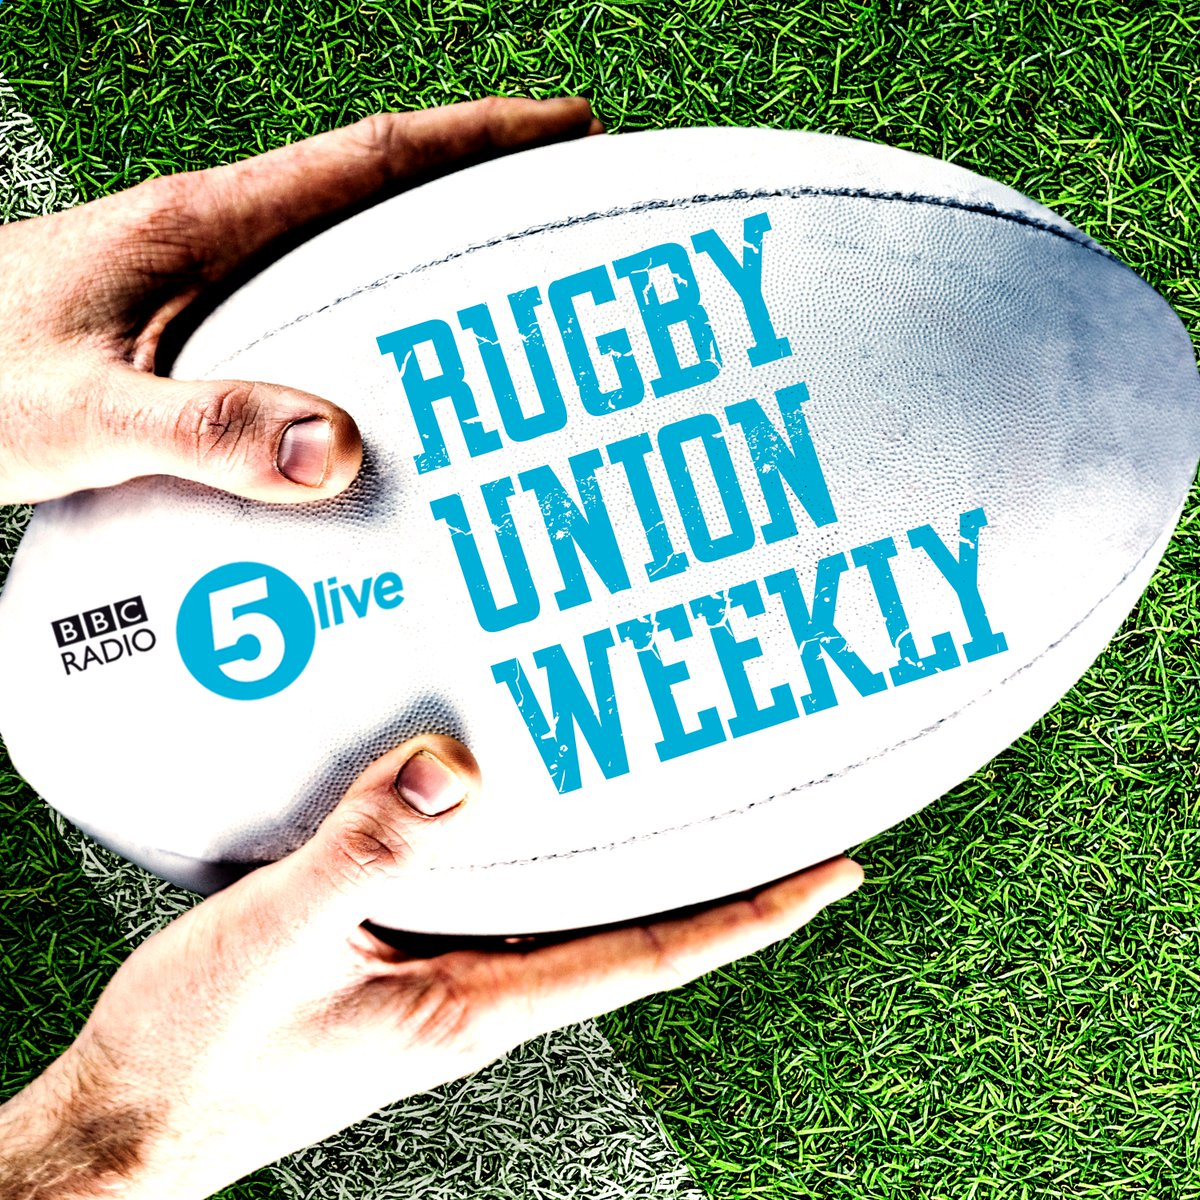 🏉 More injury woe for Billy Vunipola; 🏉 Freddie Burns' nightmare weekend; 🏉 And @FalconsRugby fly high in Europe.  @chjones9, @ugomonye and @dannycare are back with the Rugby Union Weekly:  Download ➡ https://t.co/EkyQP6V1bM